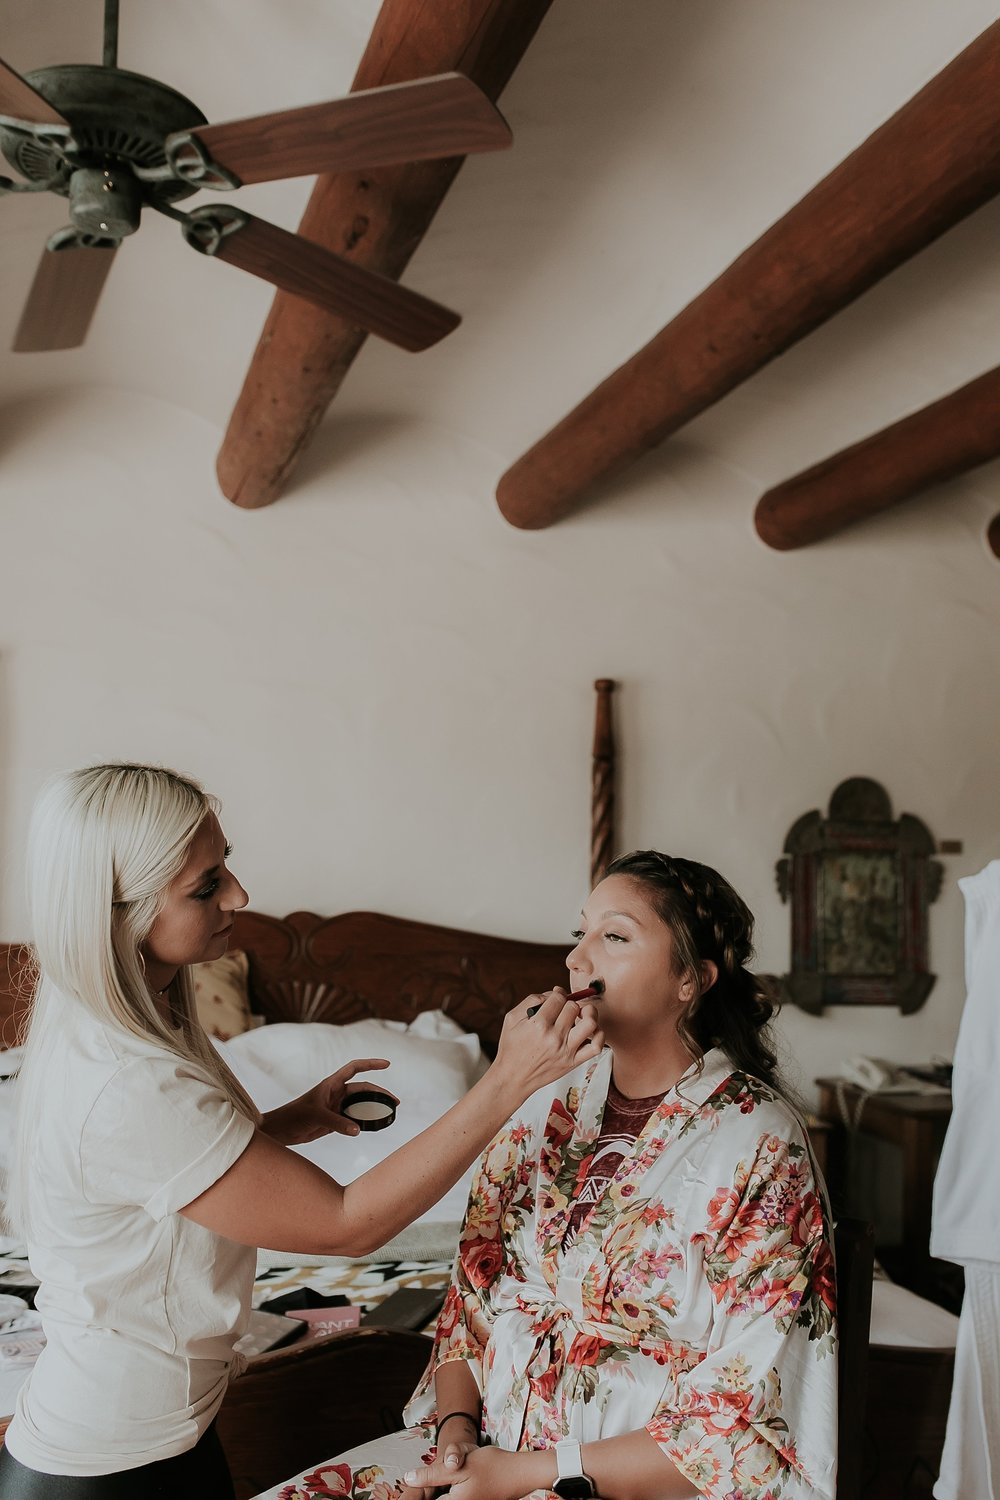 Alicia+lucia+photography+-+albuquerque+wedding+photographer+-+santa+fe+wedding+photography+-+new+mexico+wedding+photographer+-+santa +fe+wedding+-+albuquerque+wedding+-+southwest+wedding+-+bridesmaid+gifts+-+wedding+party_0015.jpg